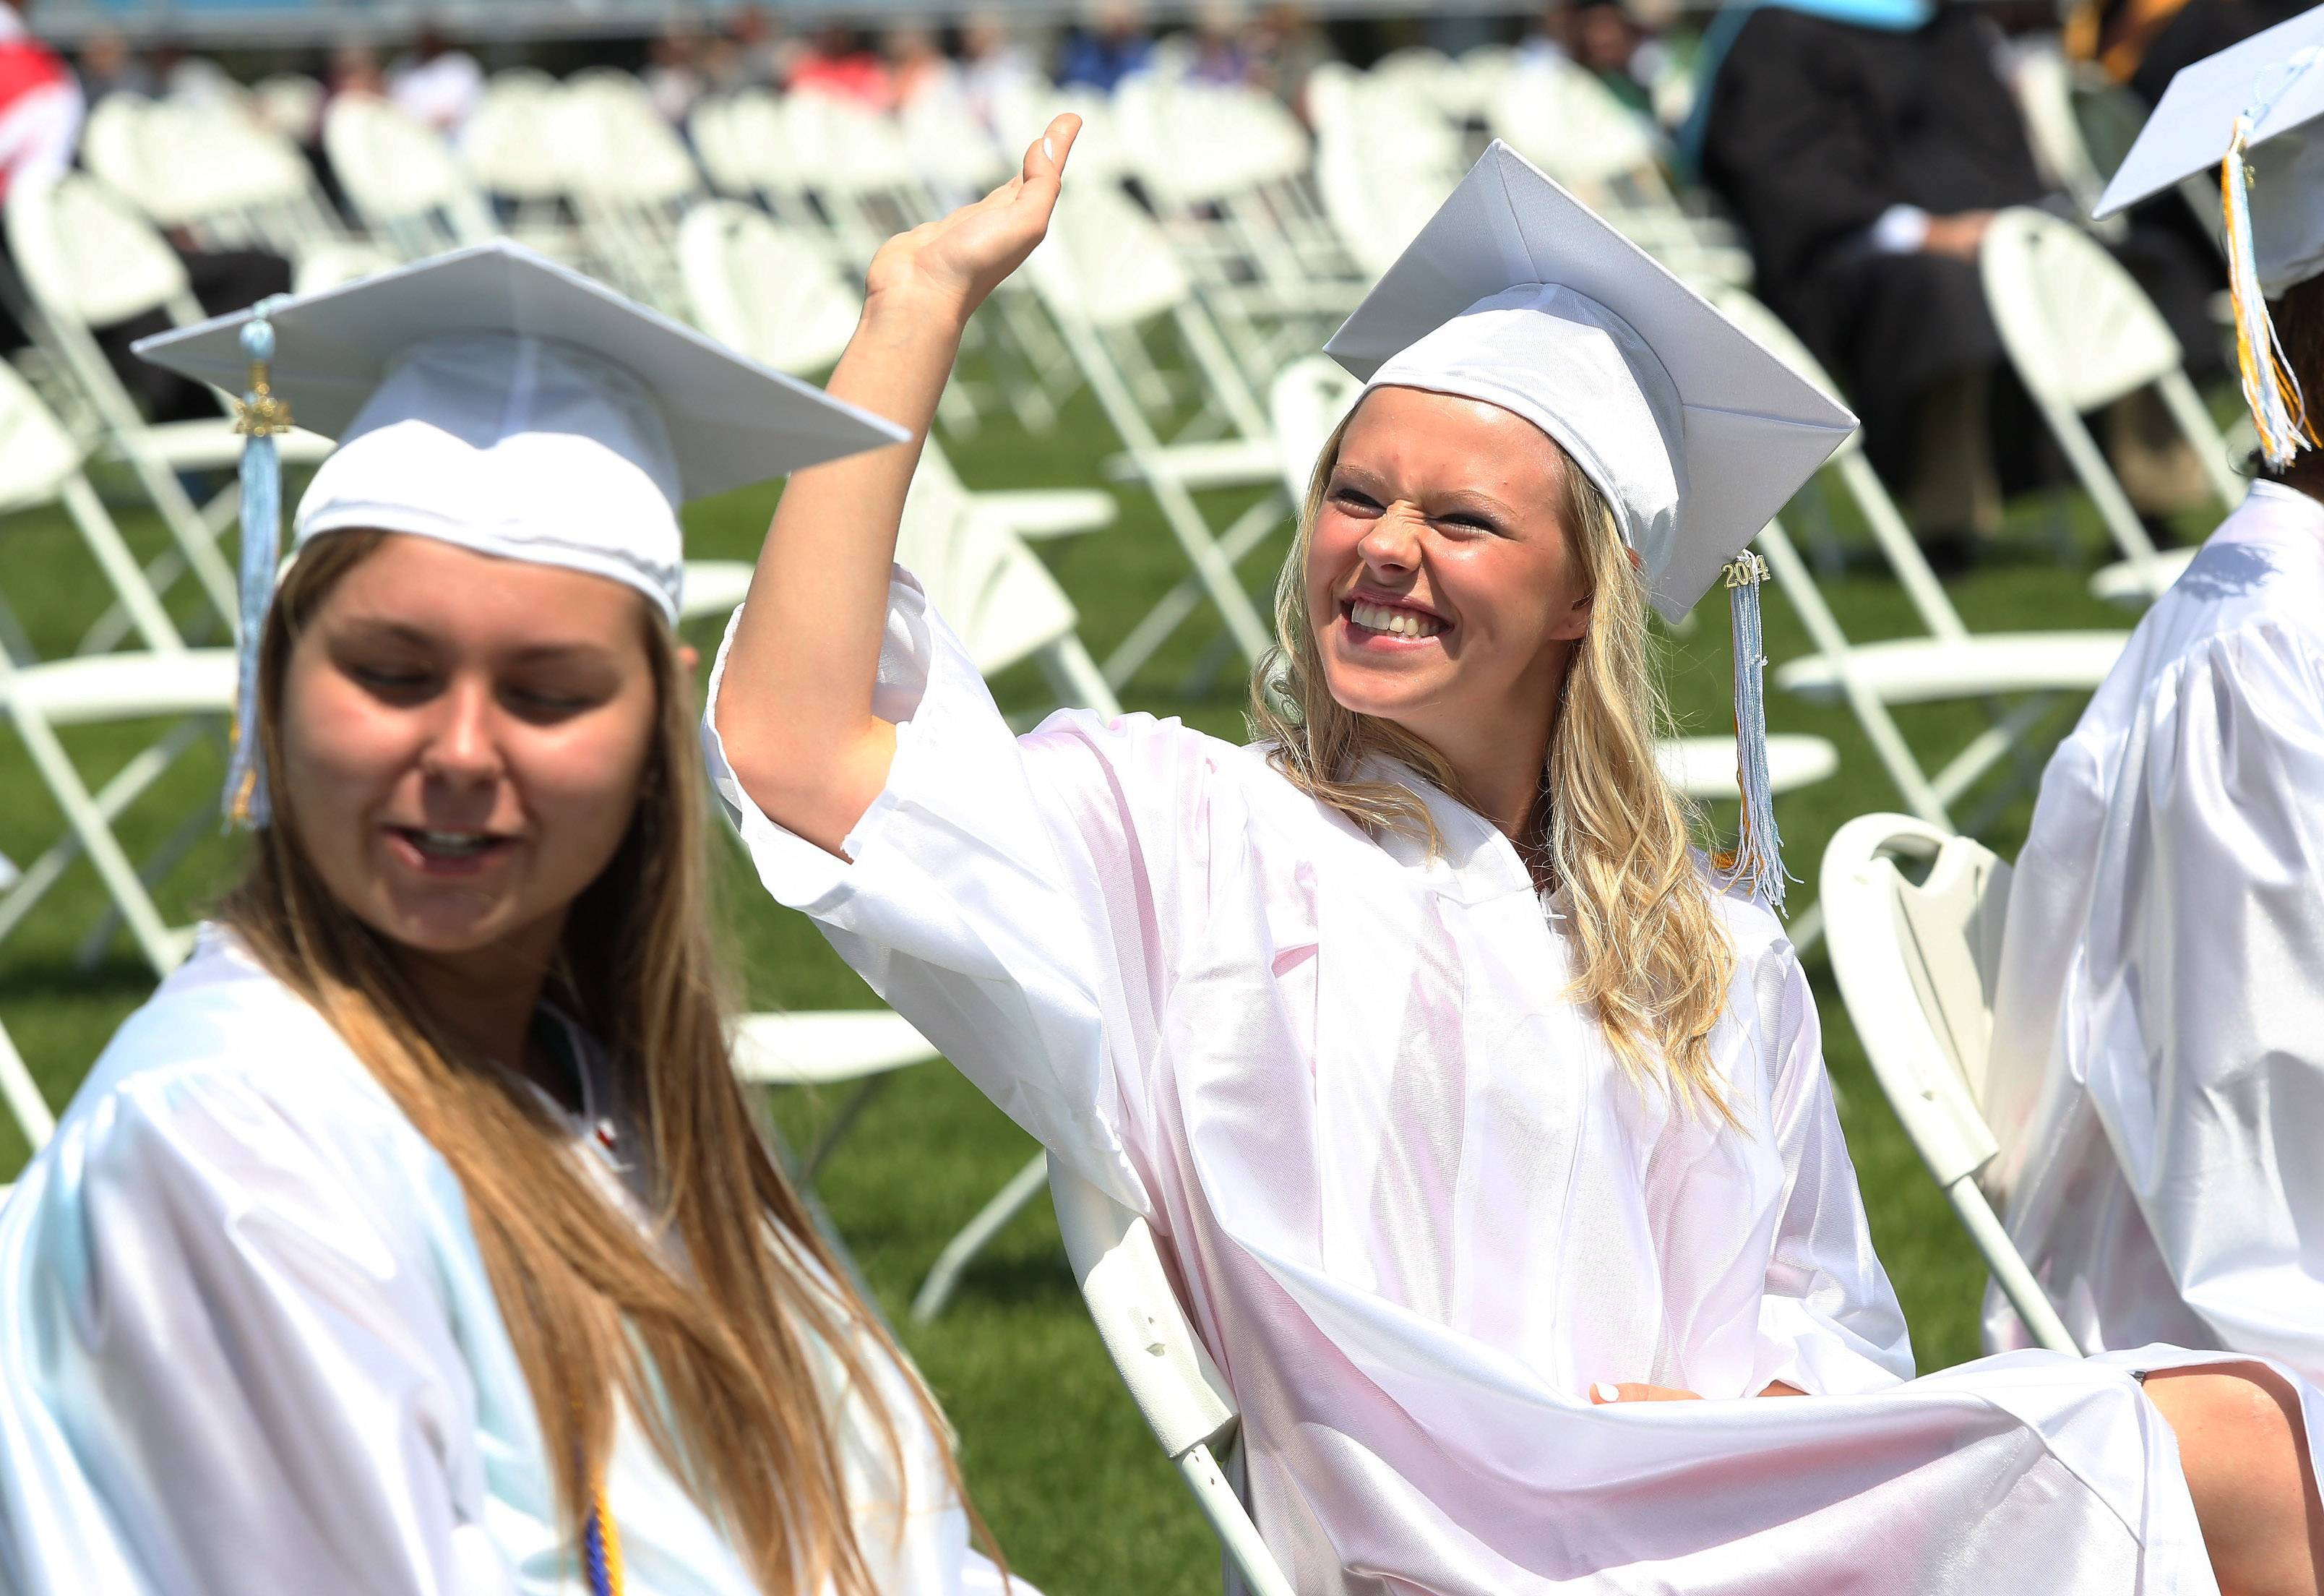 Paulina Kulikowska waves to family during the Maine West High School graduation on Sunday in Des Plaines. Over 500 seniors received their diplomas in the outdoor commencement ceremony.